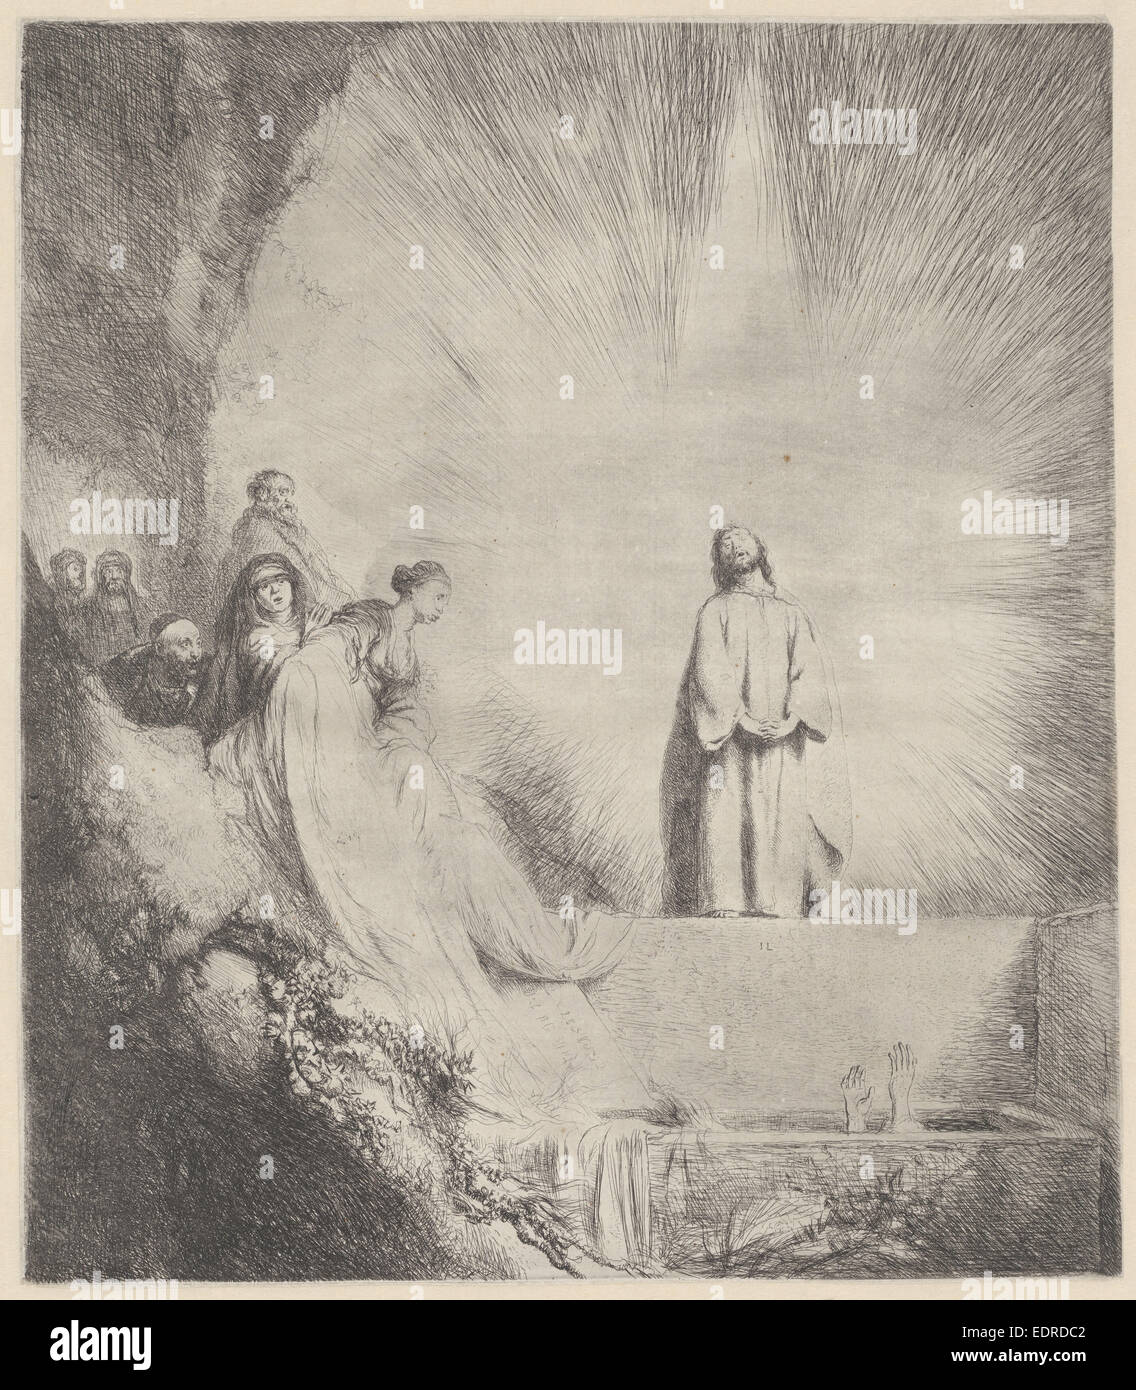 Raising of Lazarus, Jan Lievens, 1630 - 1631 Stock Photo